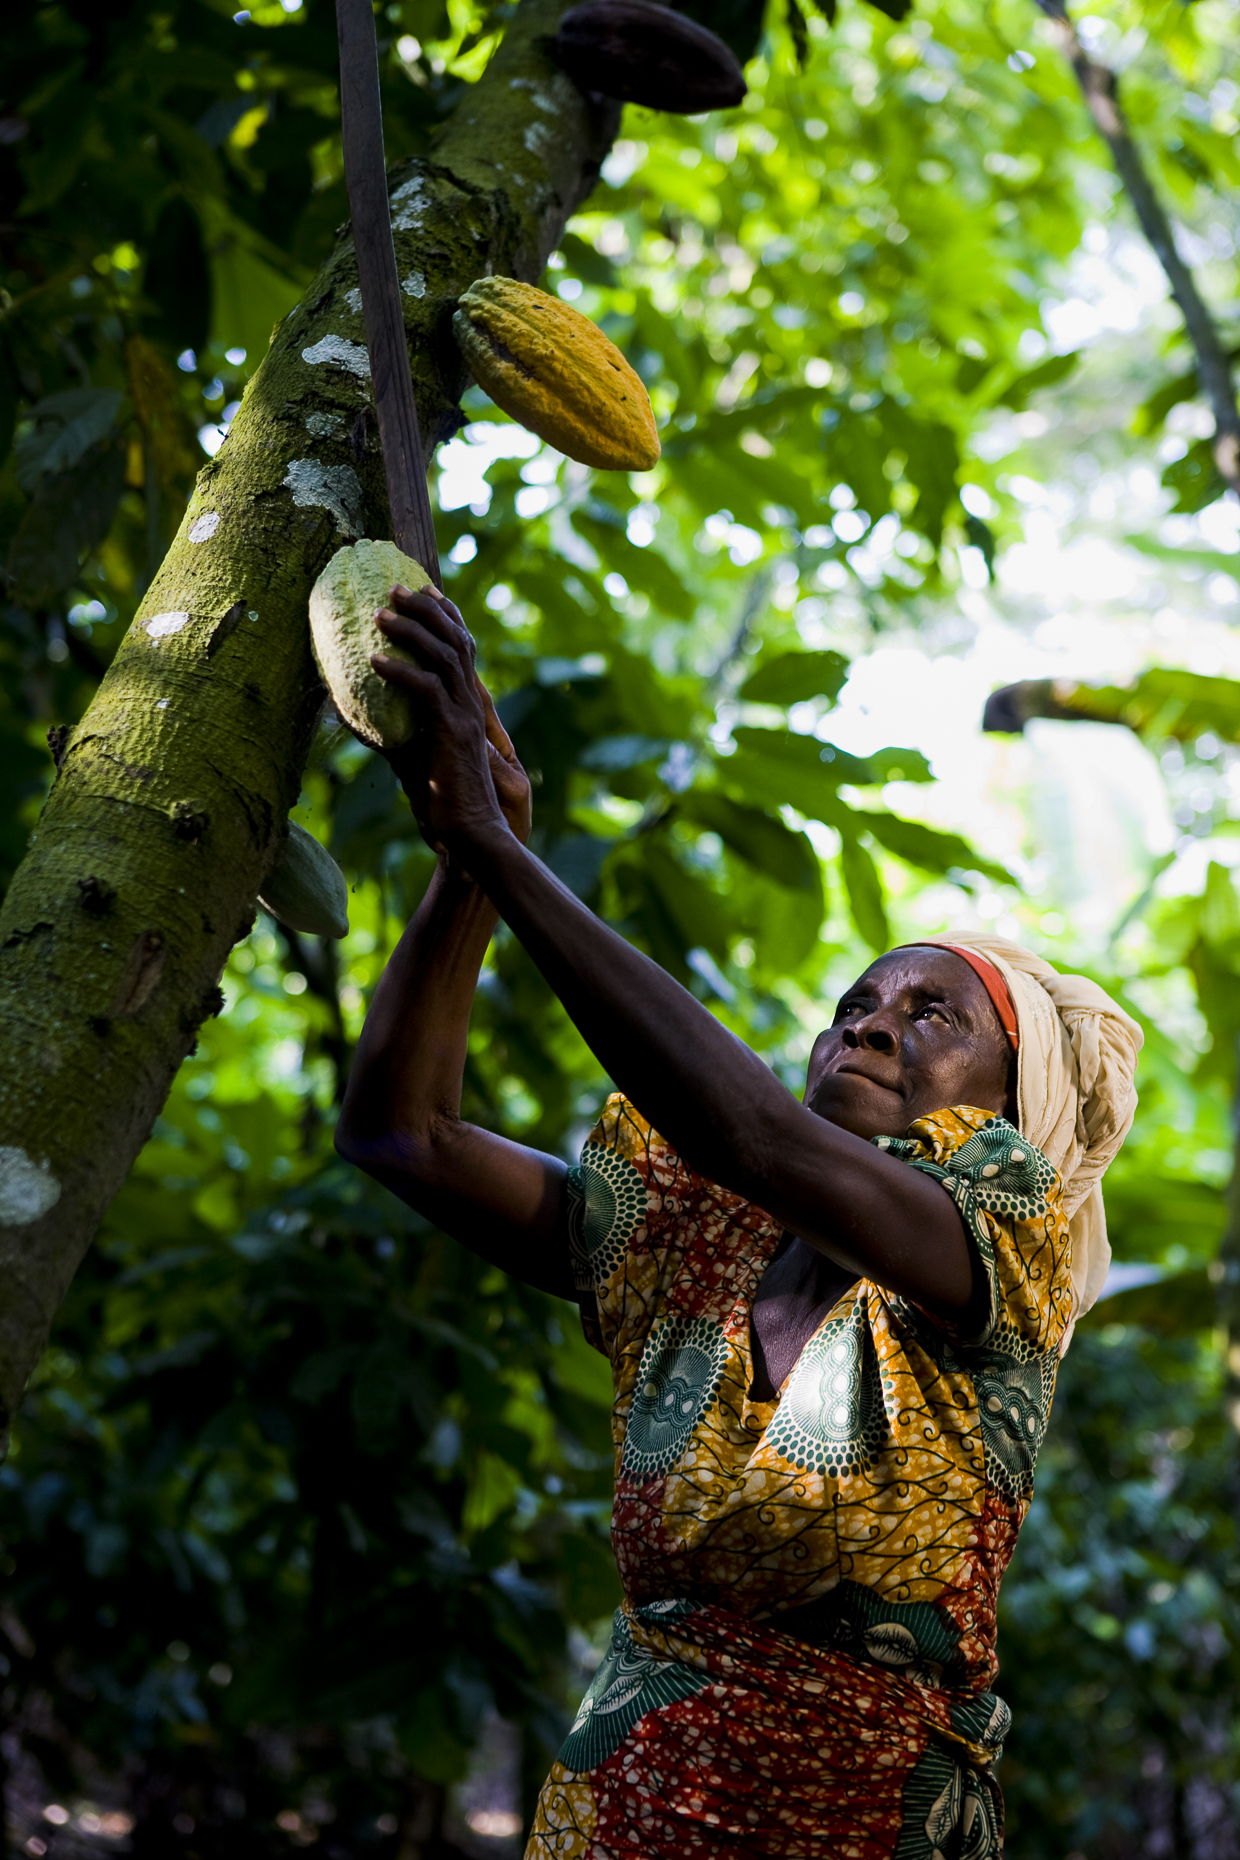 Fair trade cocoa farmer